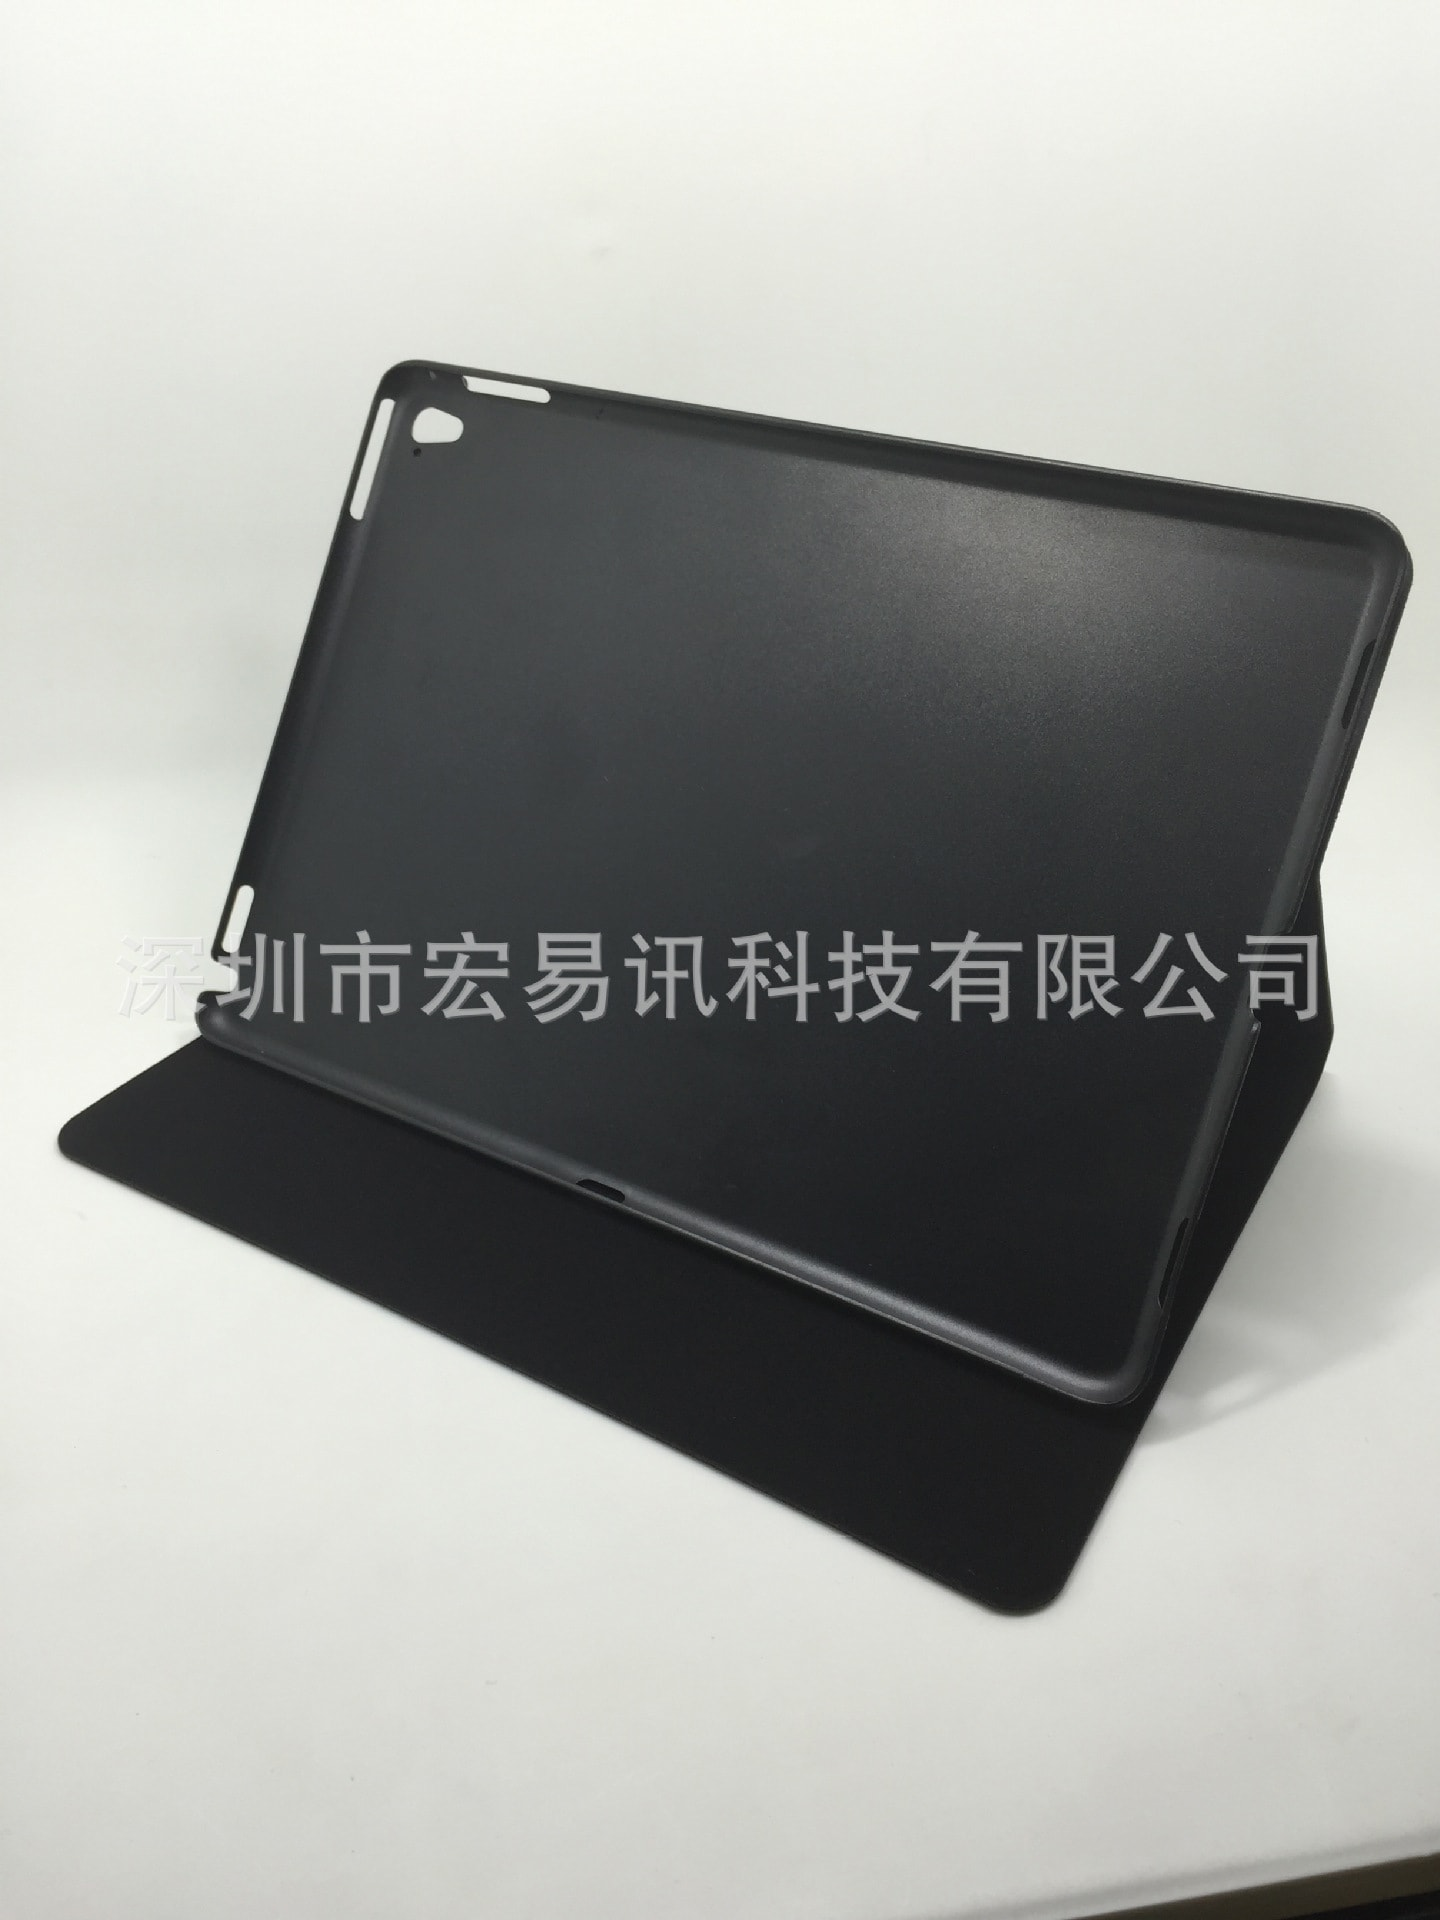 iPad Air 3 case -1